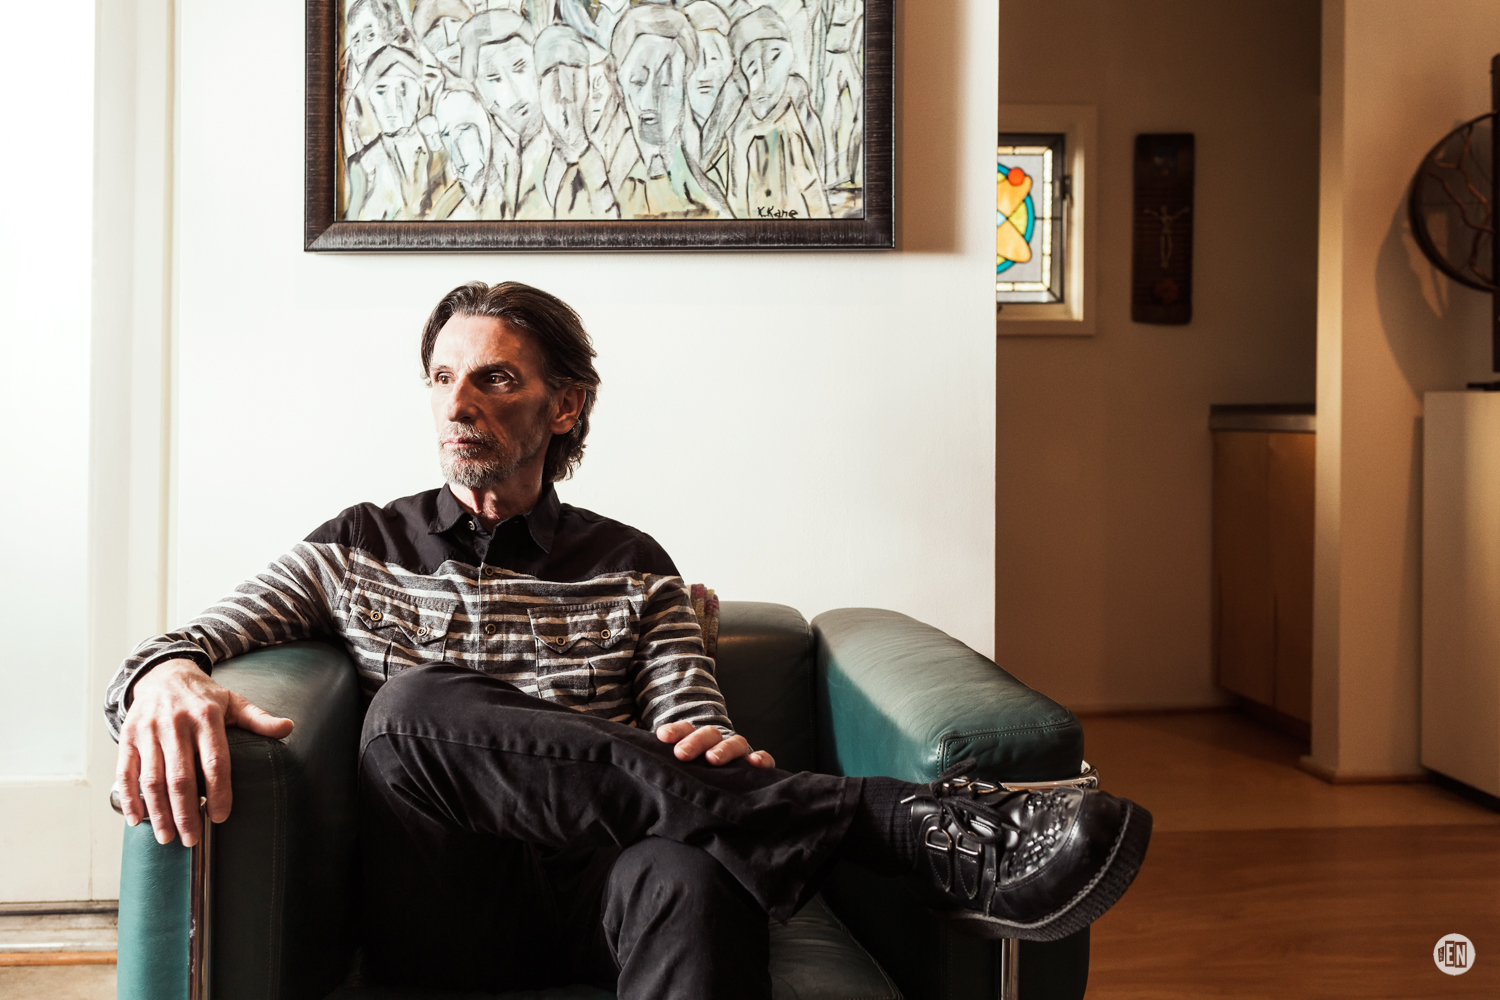 Artist/Producer Bill Brimm at his home in East Nashville. Photo by Travis Commeau